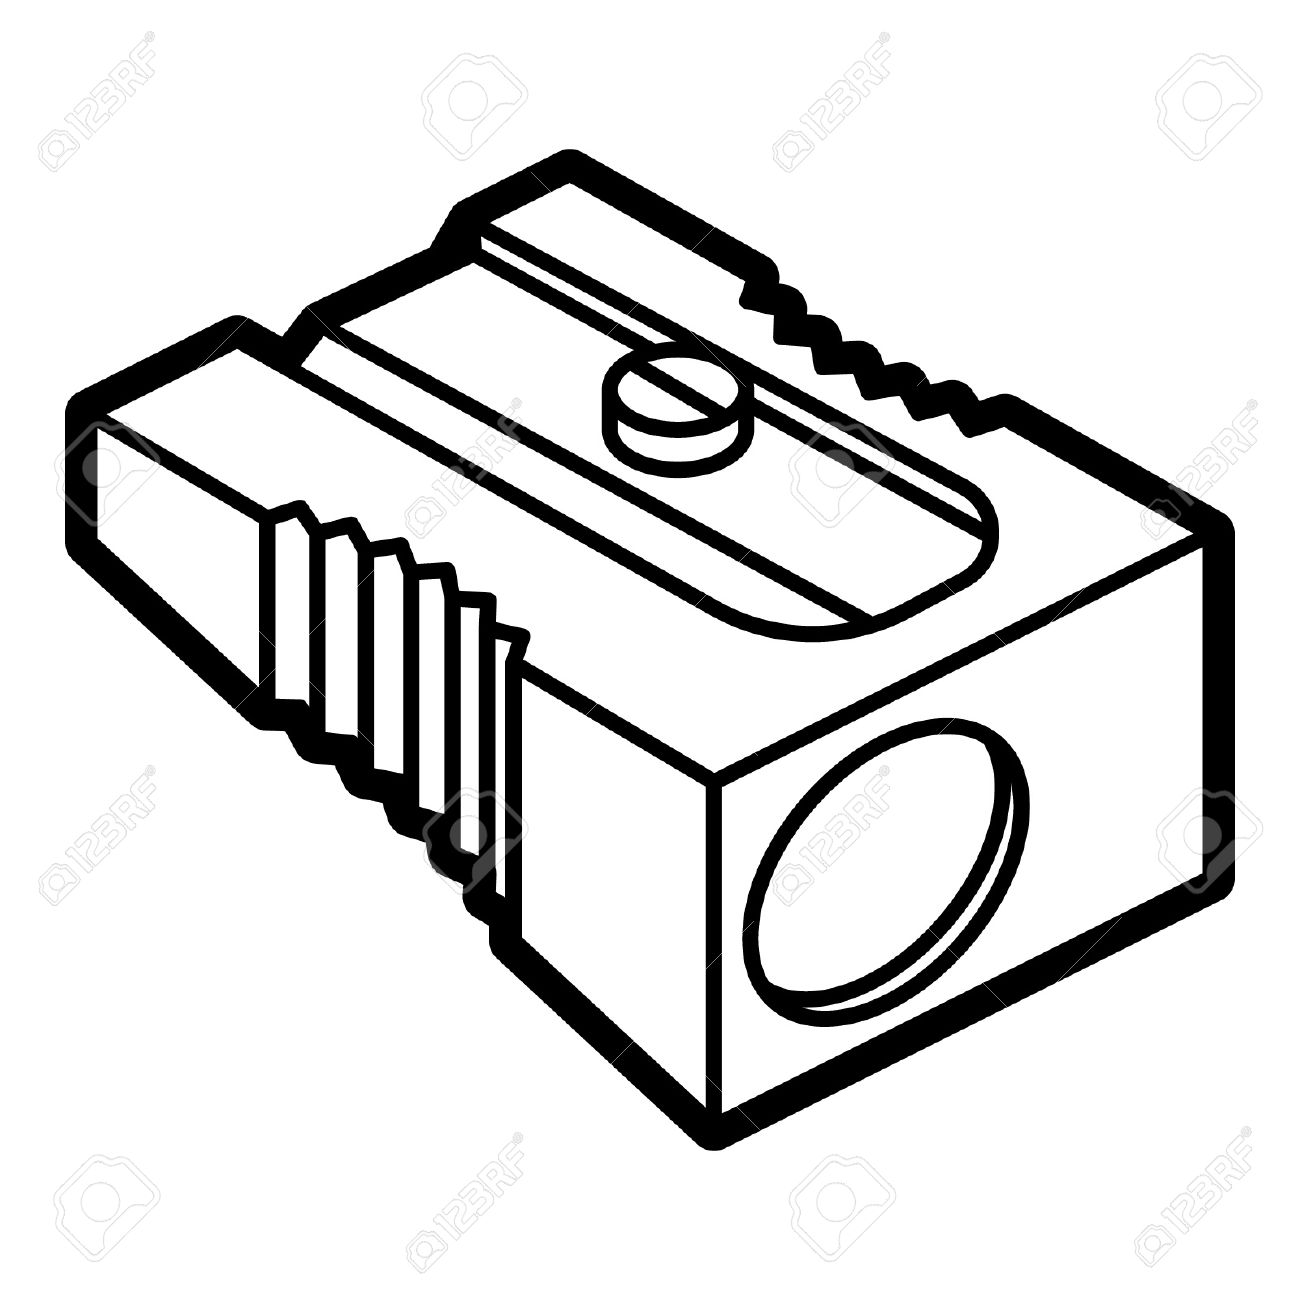 pencil sharpener outline icon royalty free cliparts, vectors, and